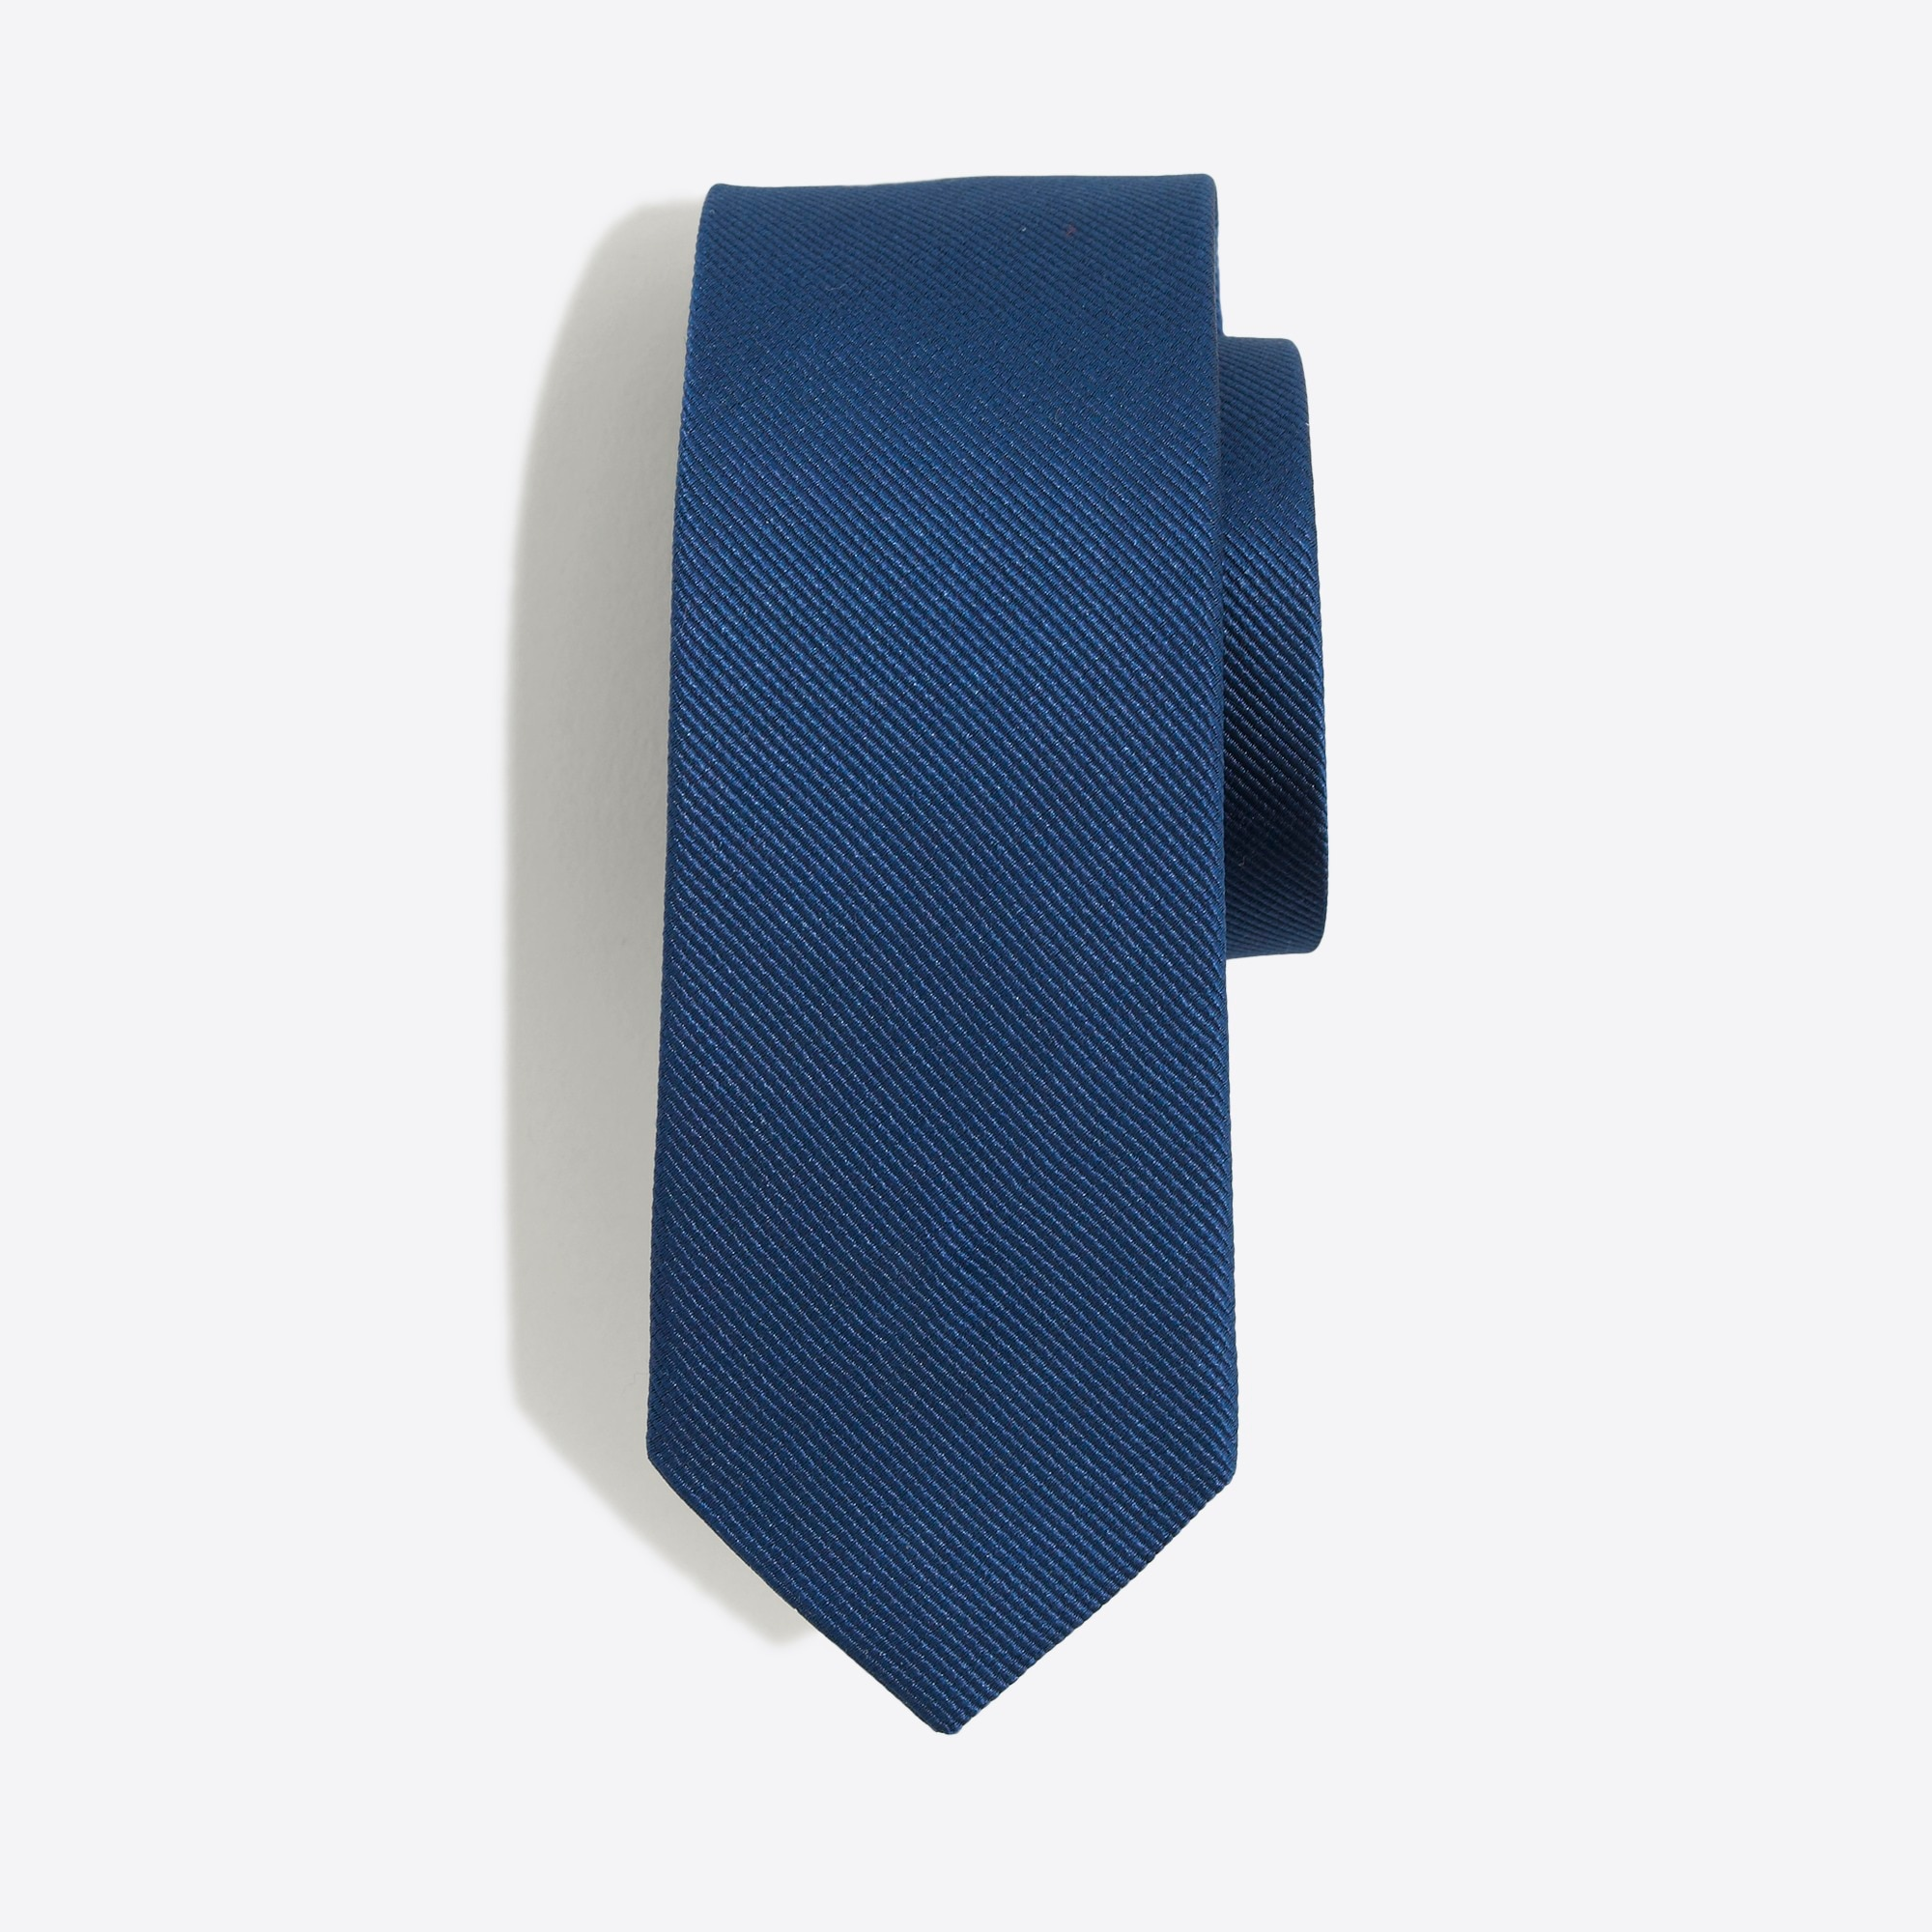 Boys' silk tie factoryboys ties & accessories c